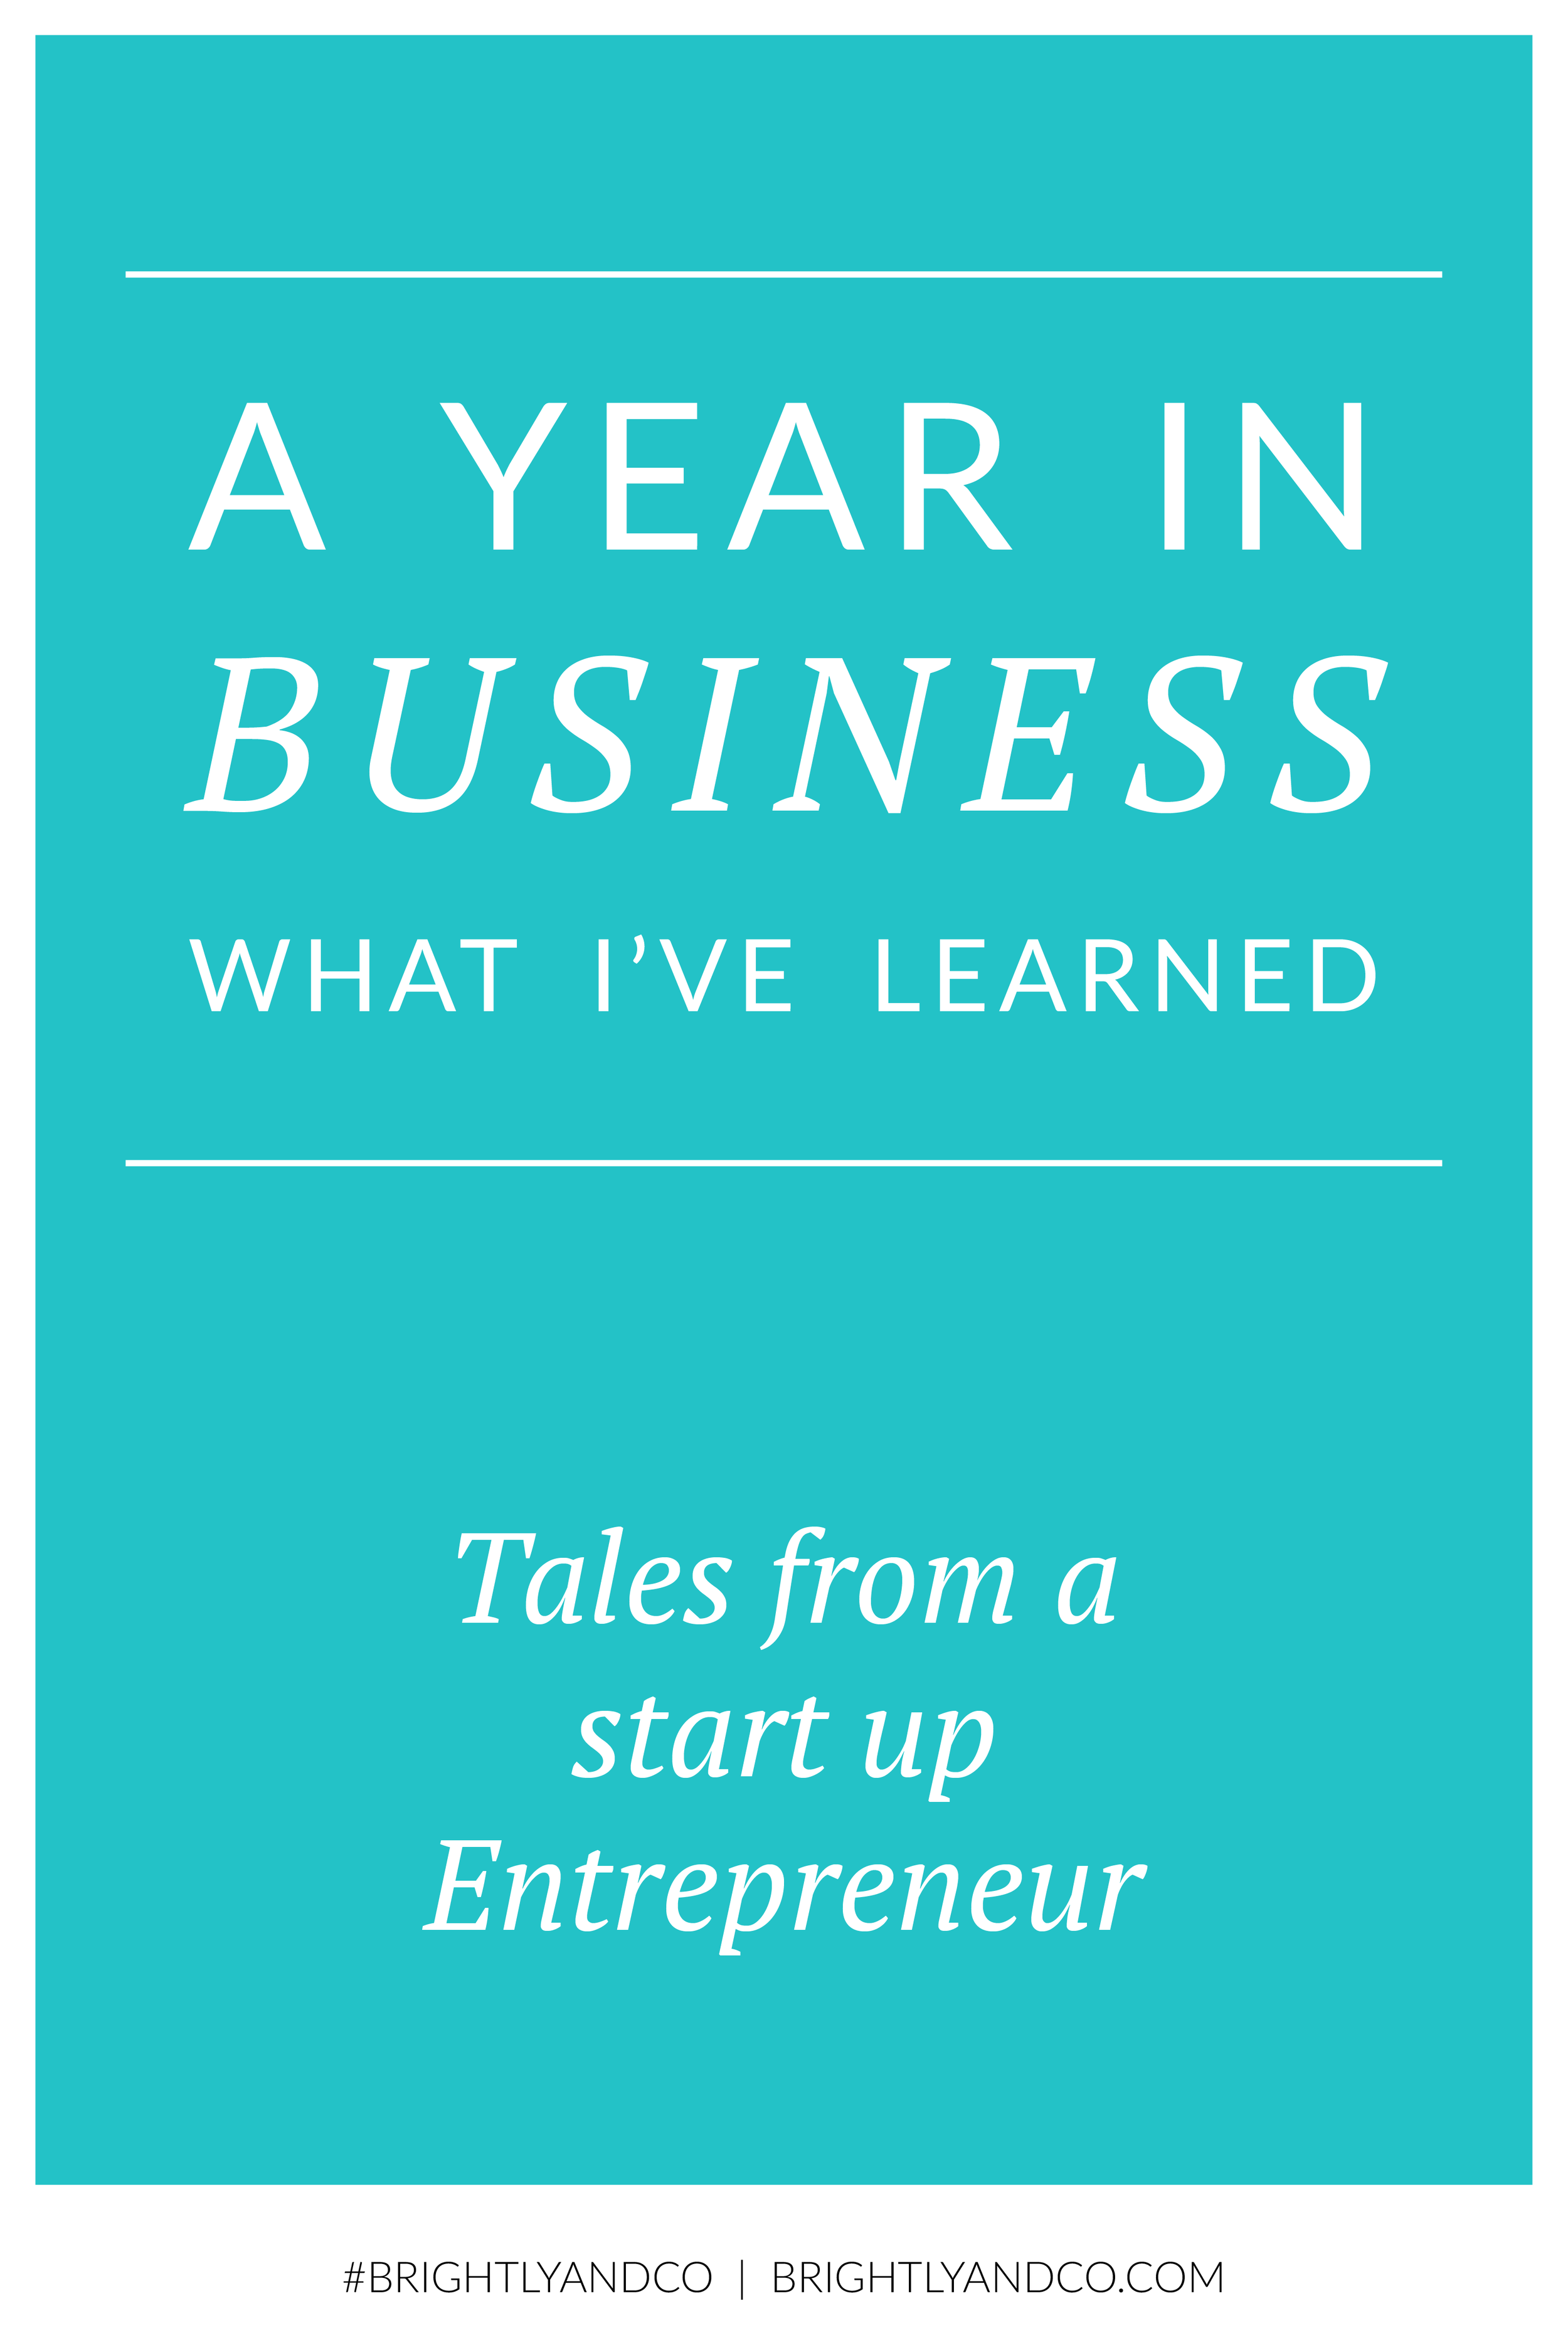 A Year in Business...what I've learned and what I want to share with you. Tales from a start up Entrepreneur. - Brightly & Co.